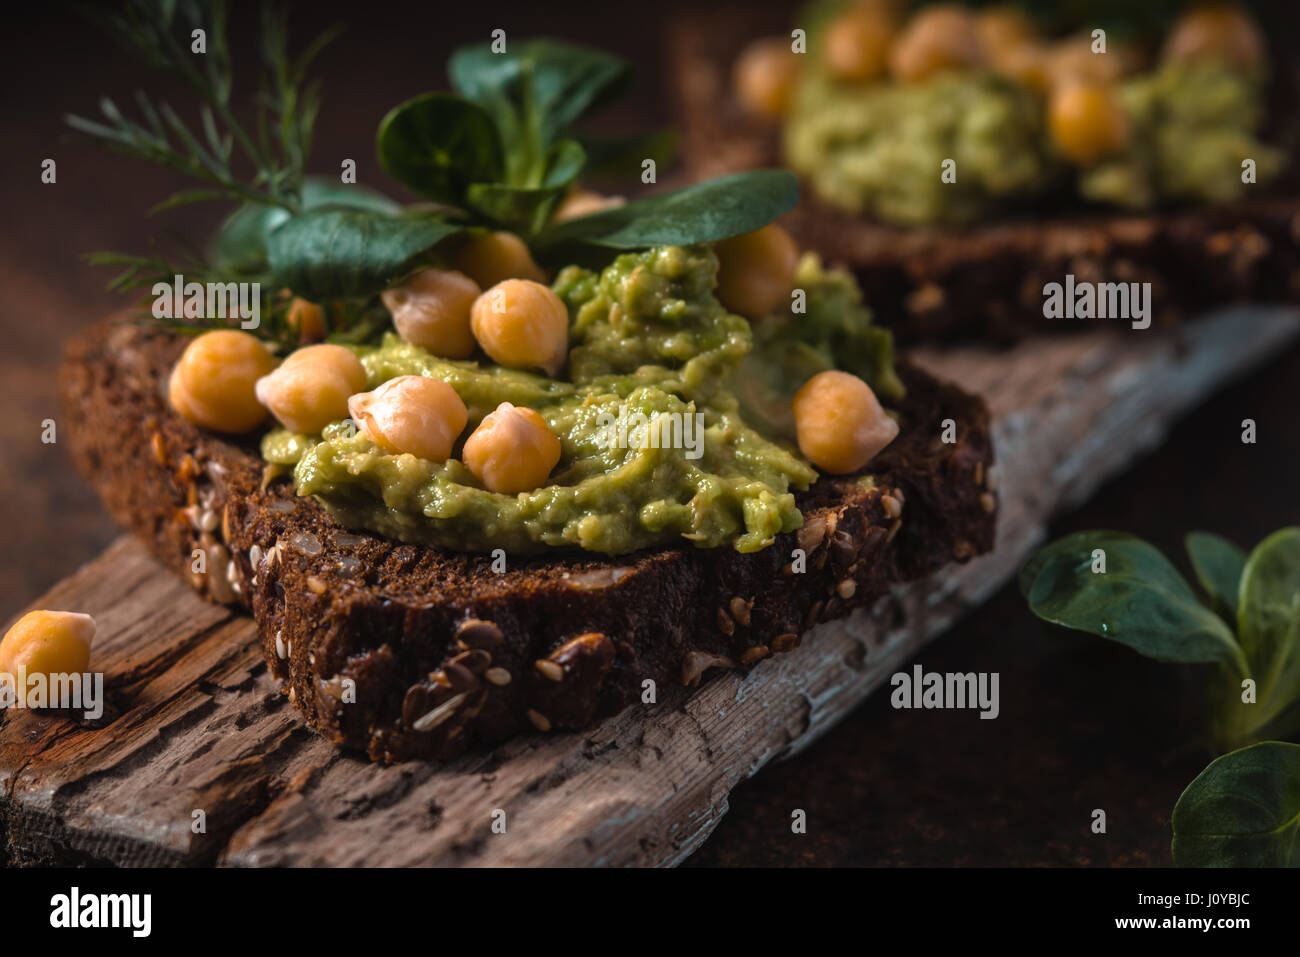 Open sandwich with avocado cream and greens  on the wooden board - Stock Image